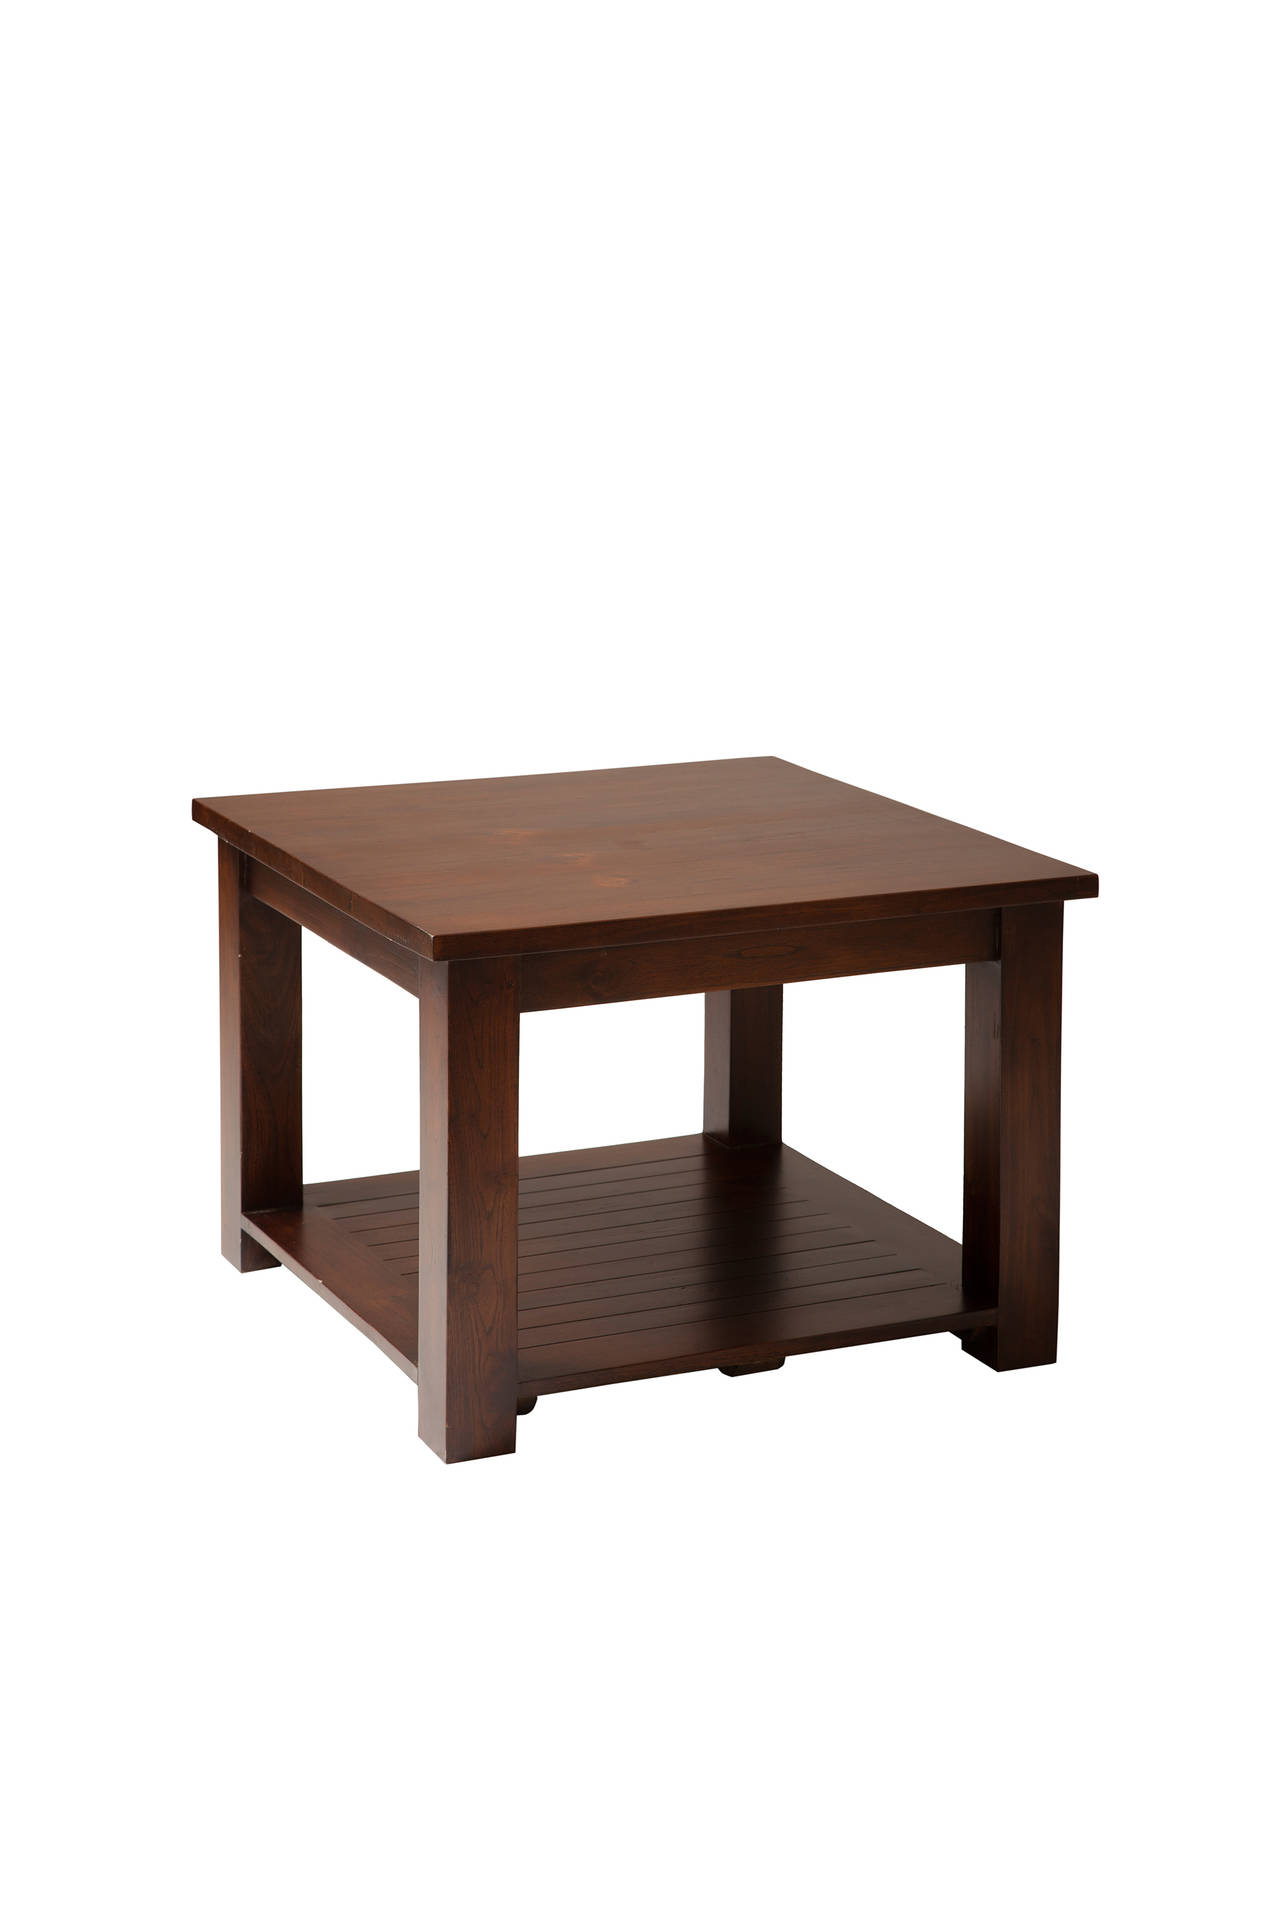 STRAIGHT SIDE TABLE 70